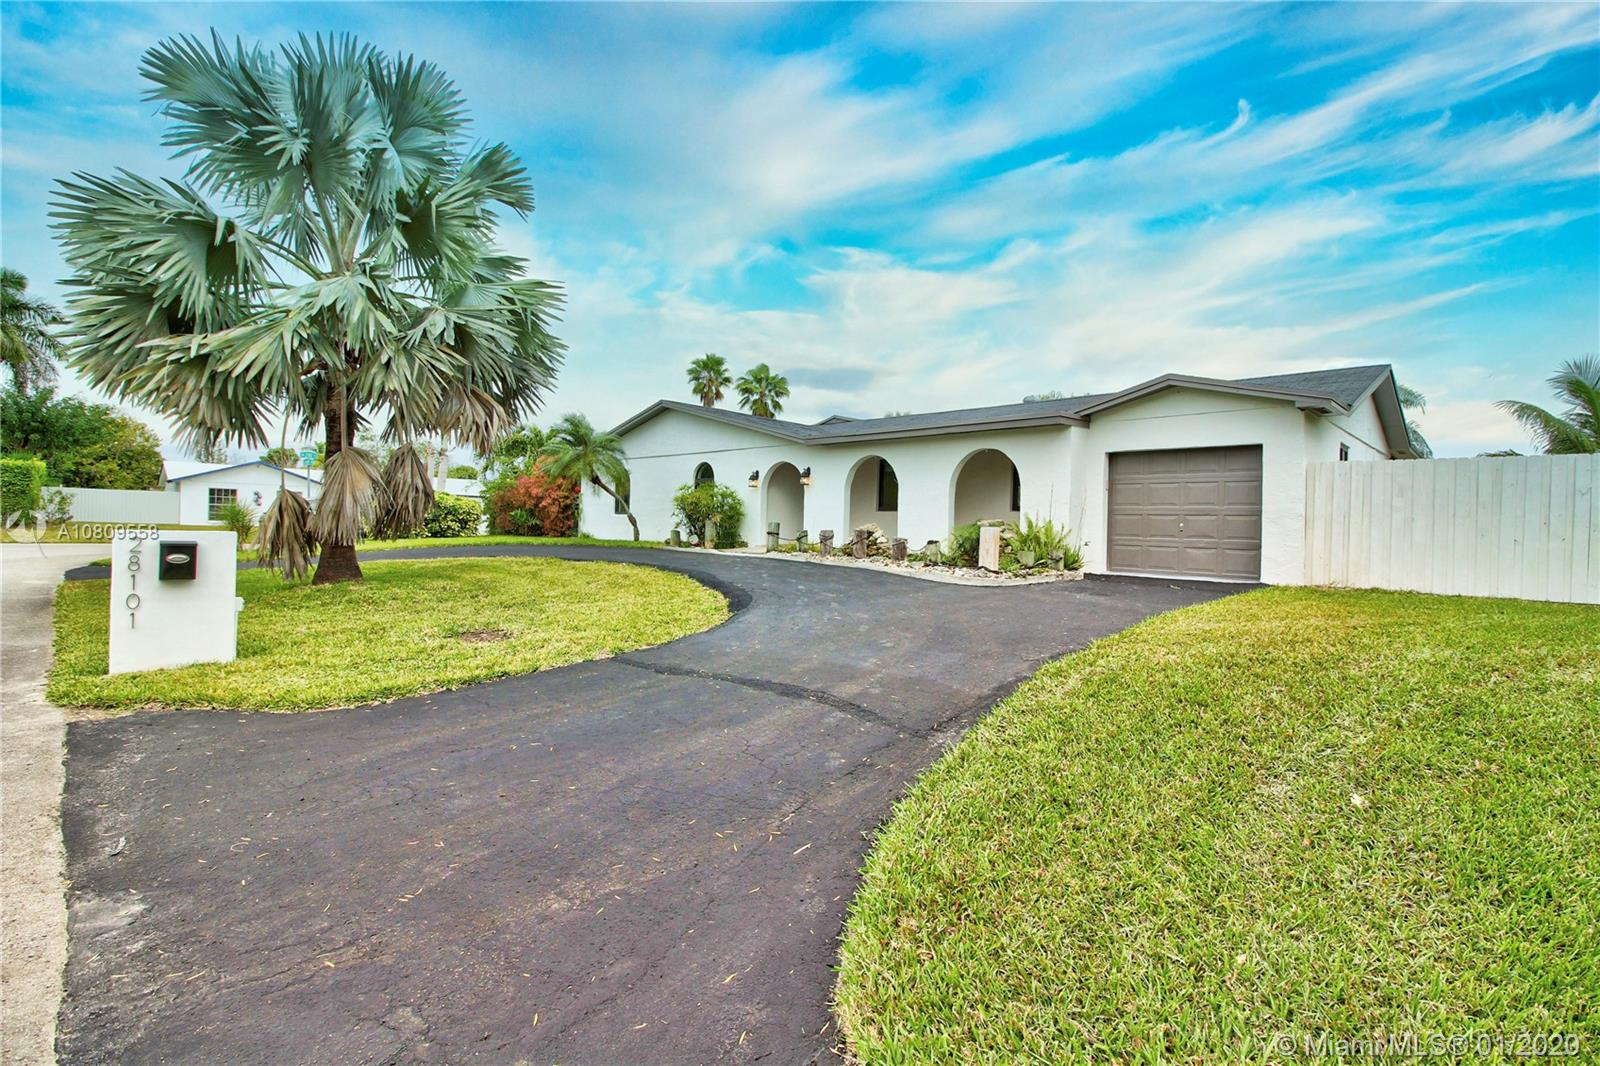 28101 SW 159th Ave, Homestead, FL 33033 - Homestead, FL real estate listing